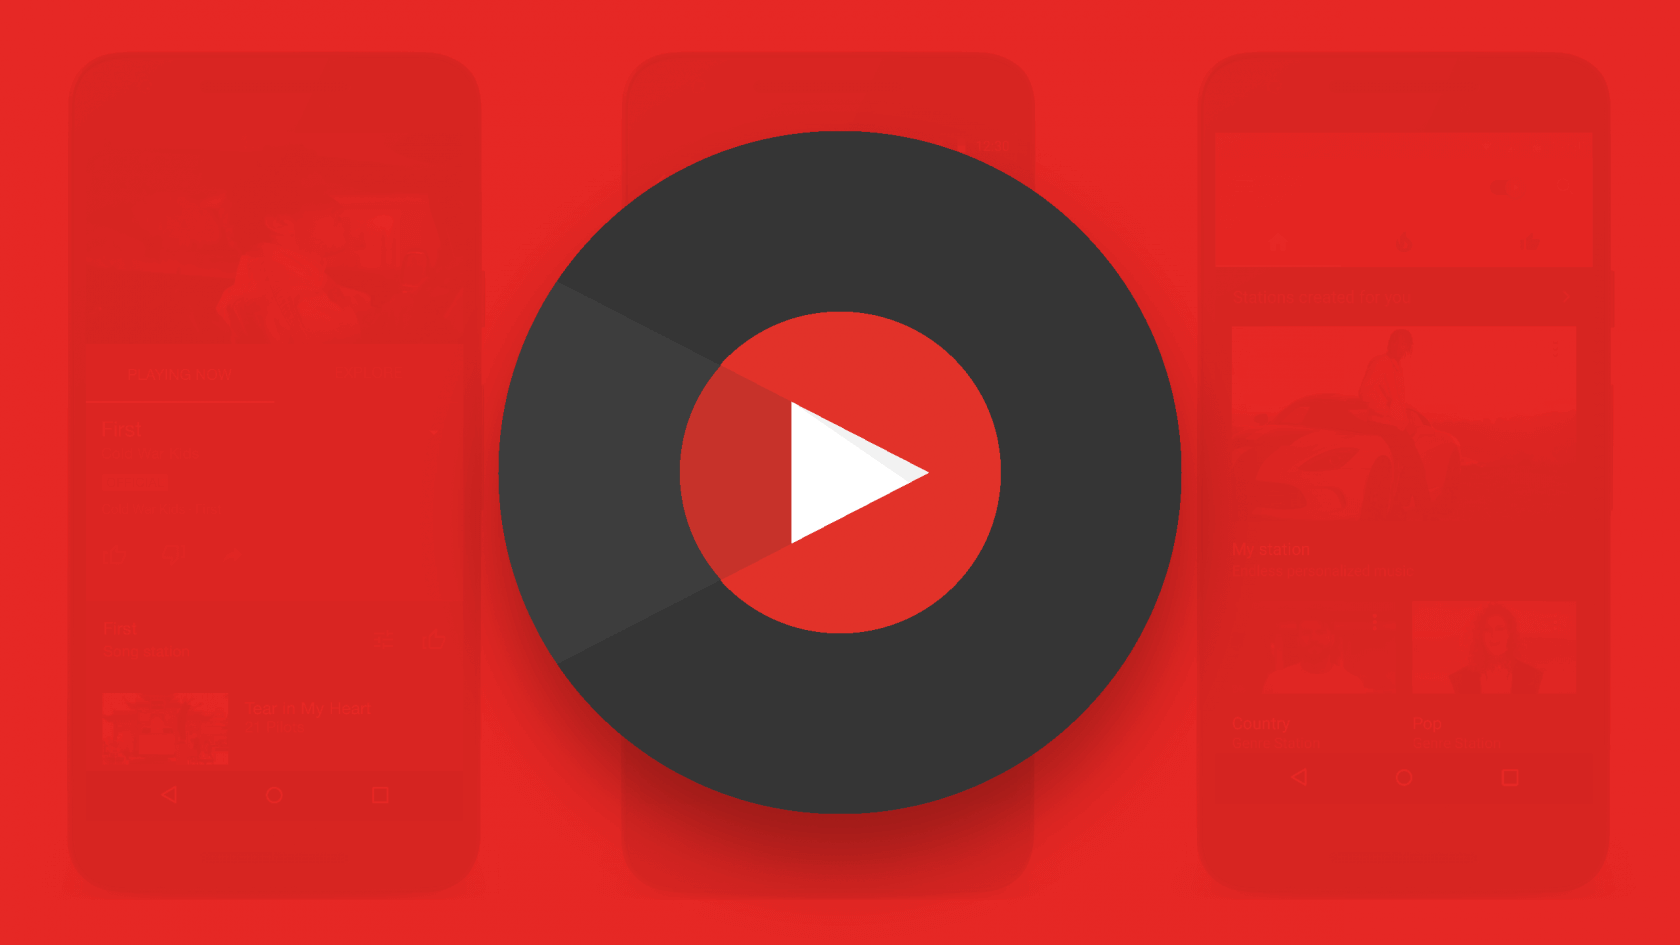 YouTube Music will come preinstalled on all new Android 10 devices